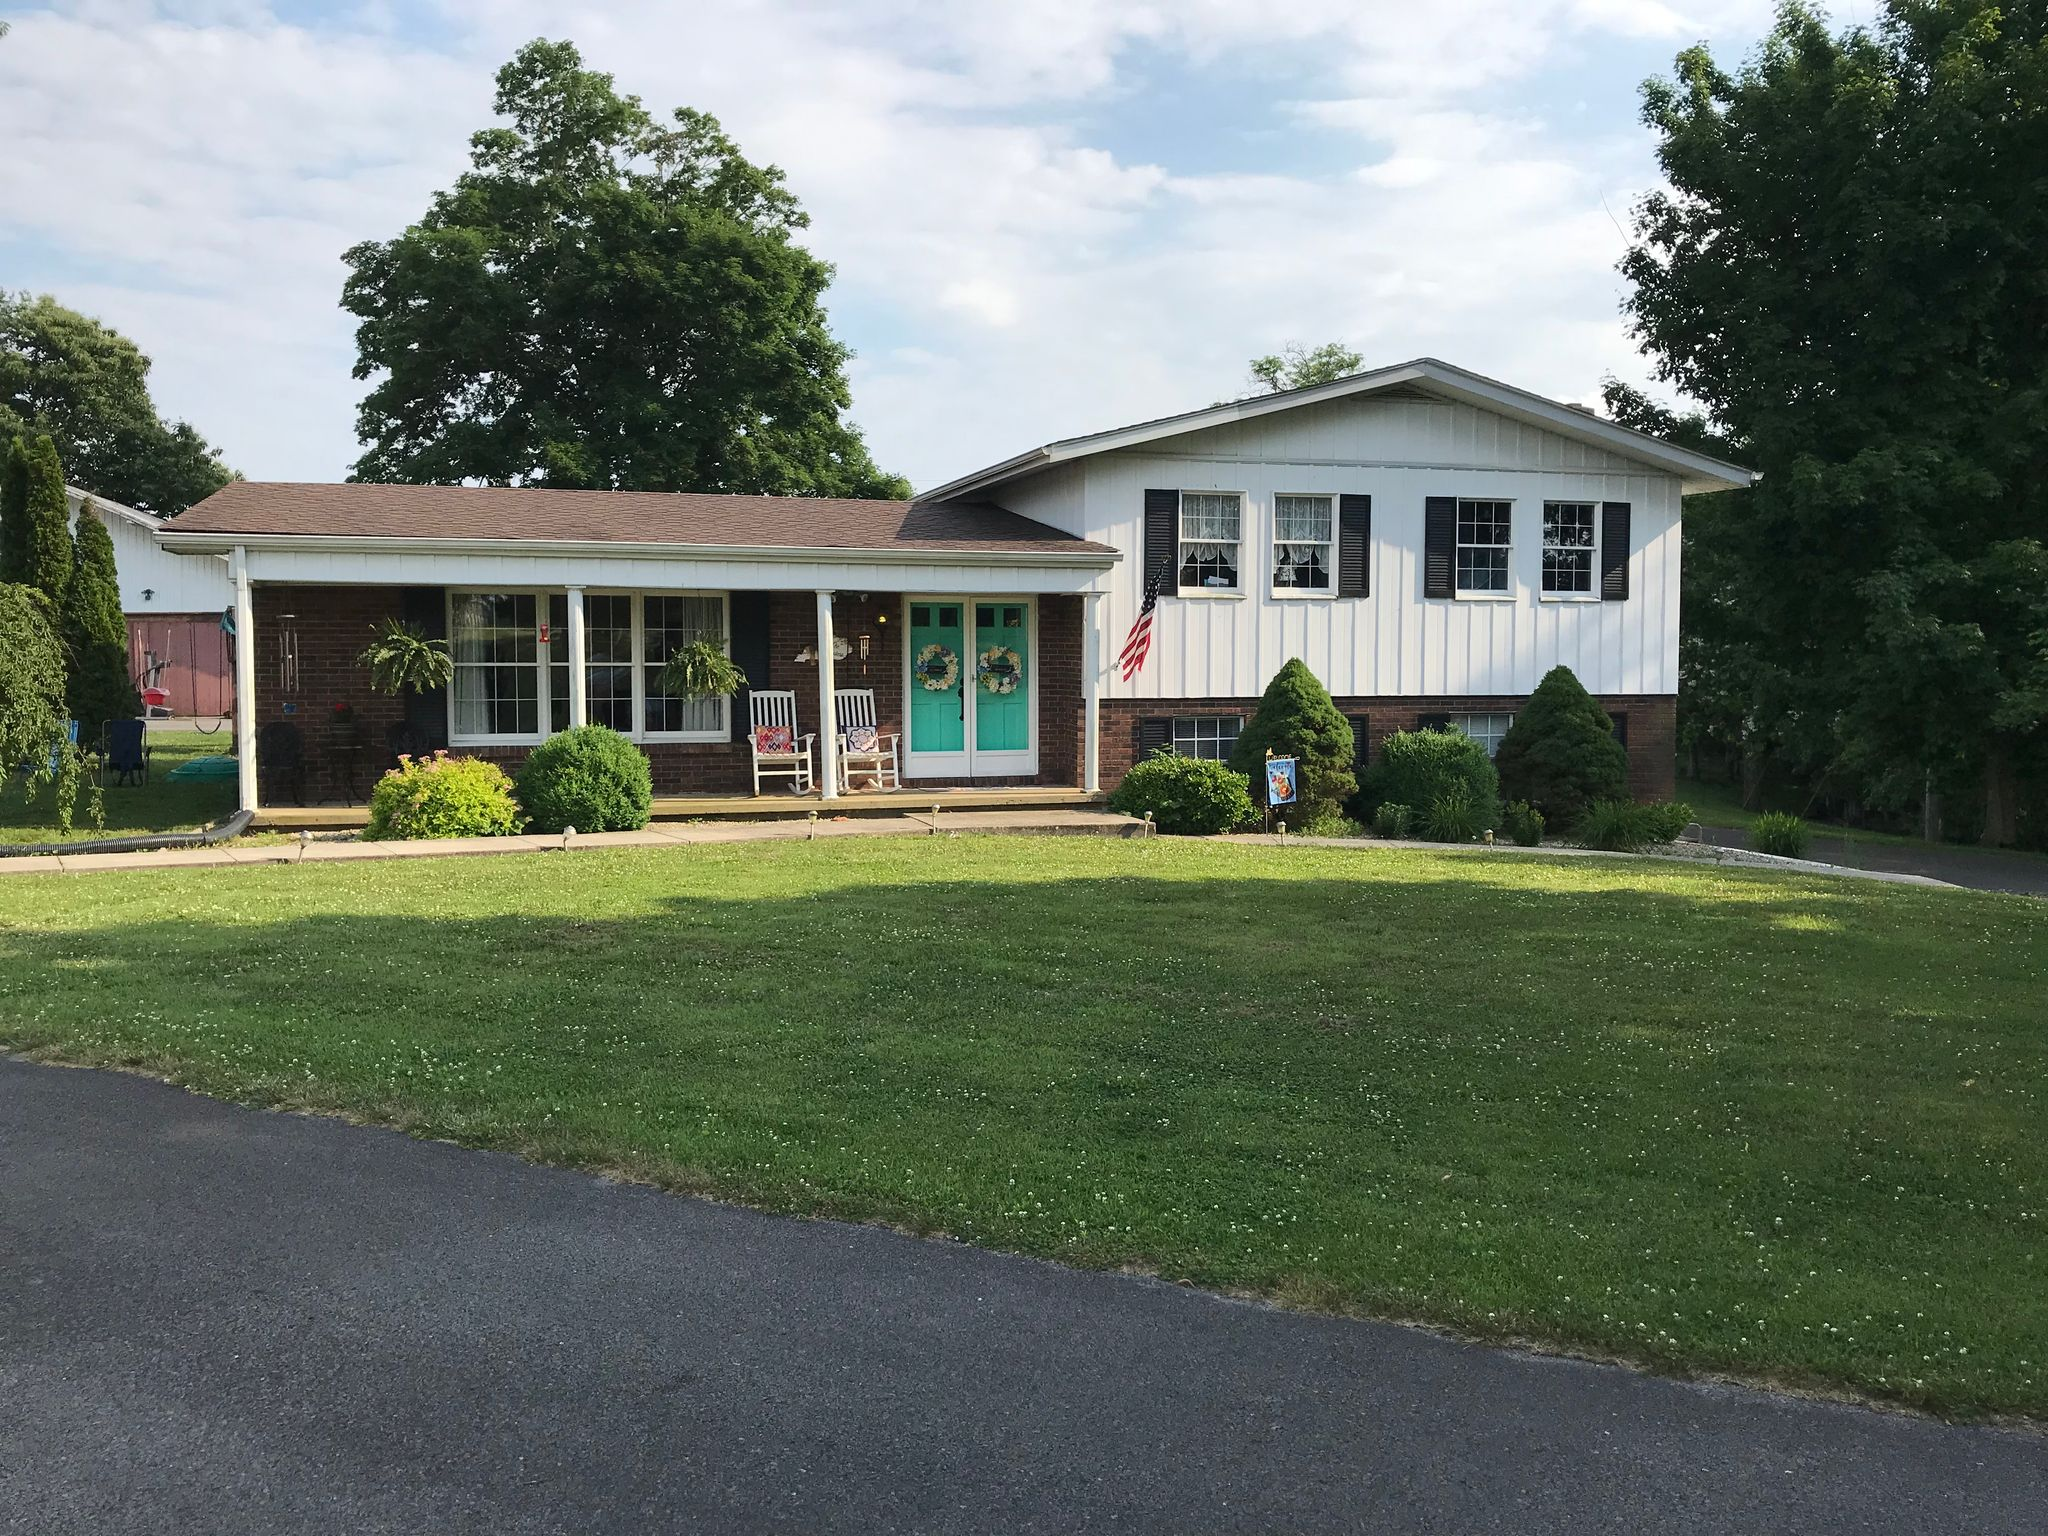 216 Karens Rd Russell Springs Ky 3 Bed 2 Bath Single Family